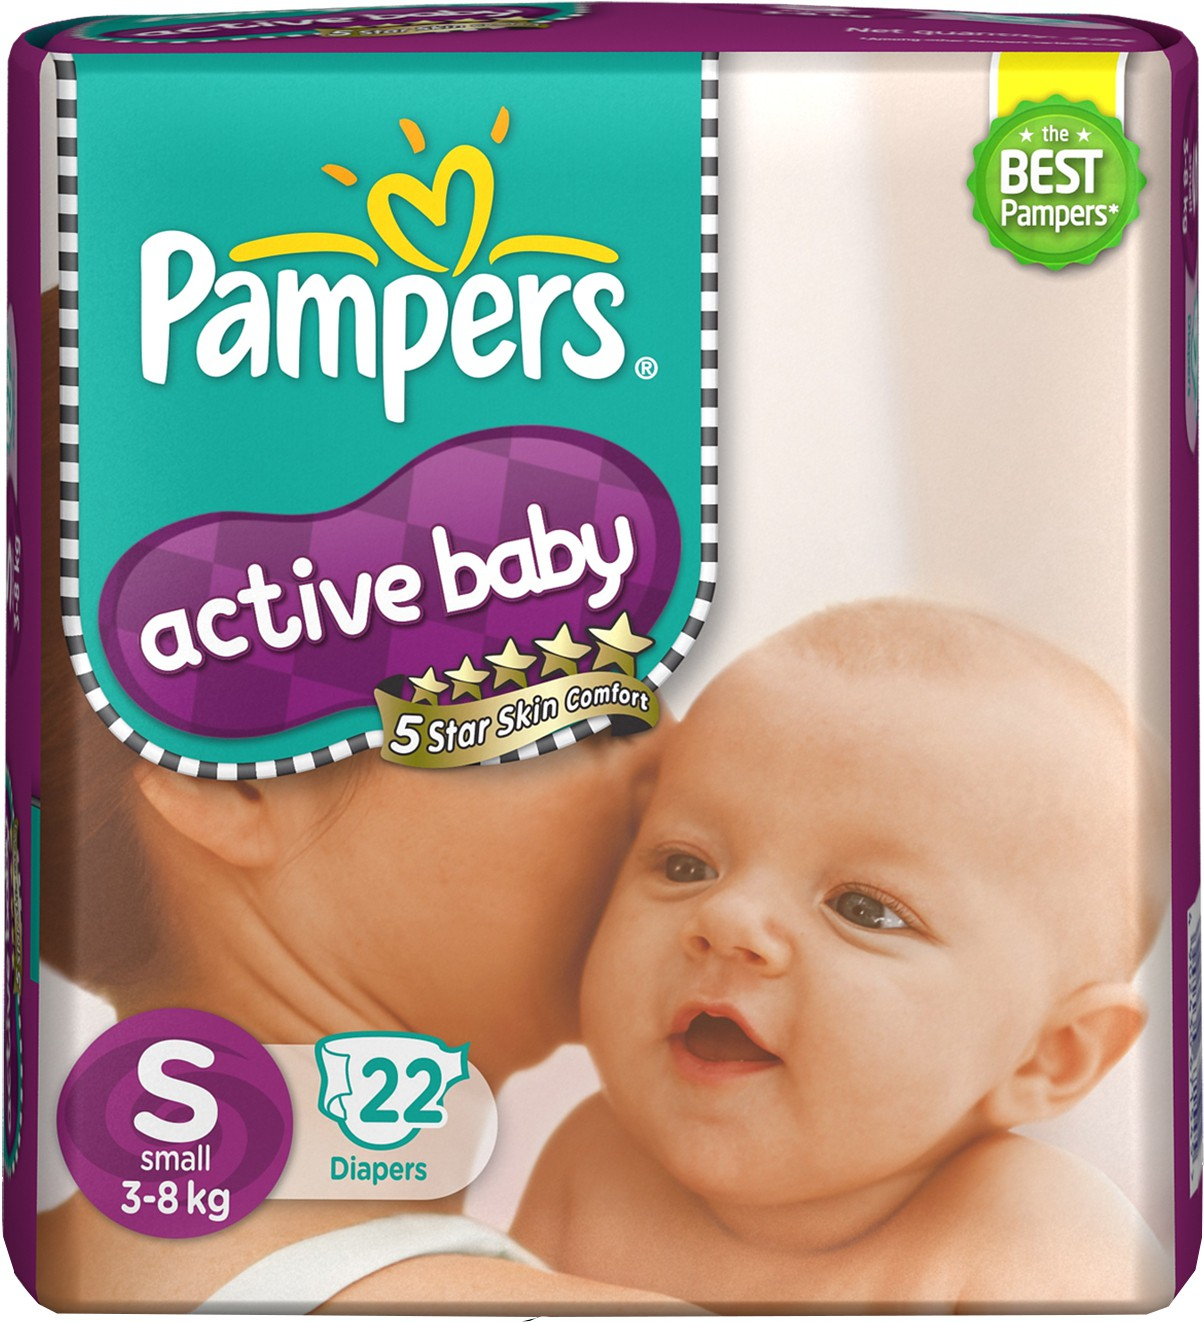 Deals - Delhi - Diapers <br> Pampers, Mamy Poko...<br> Category - baby_care<br> Business - Flipkart.com